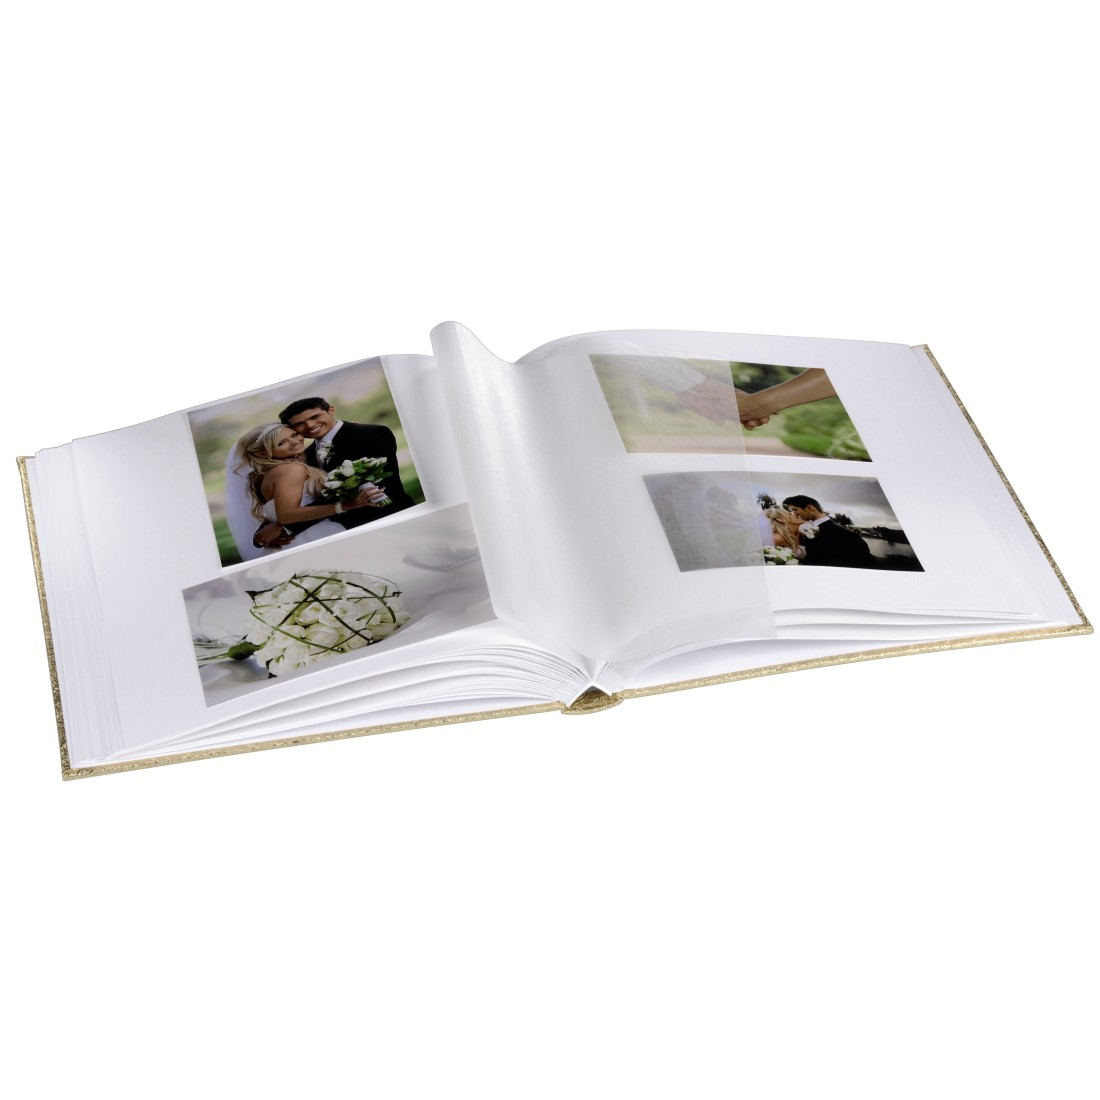 awx High-Res Appliance - Hama, Album photo livre Caracas, 29x32 cm, 50 white pages, doré